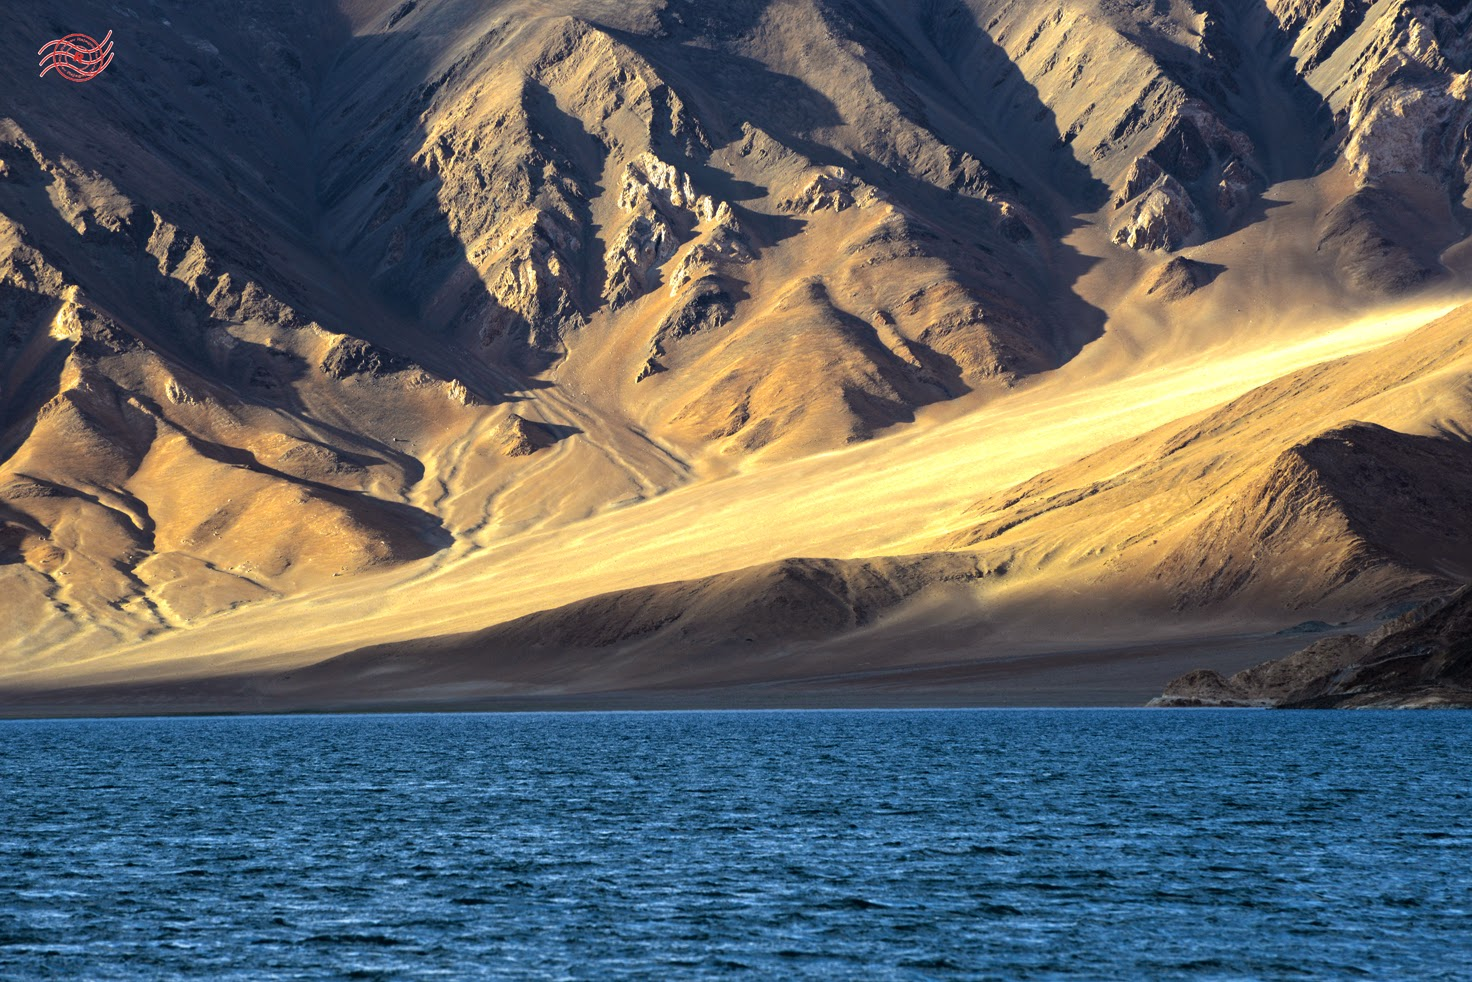 The loneliness of Borderlands: Skirting China from Pangong